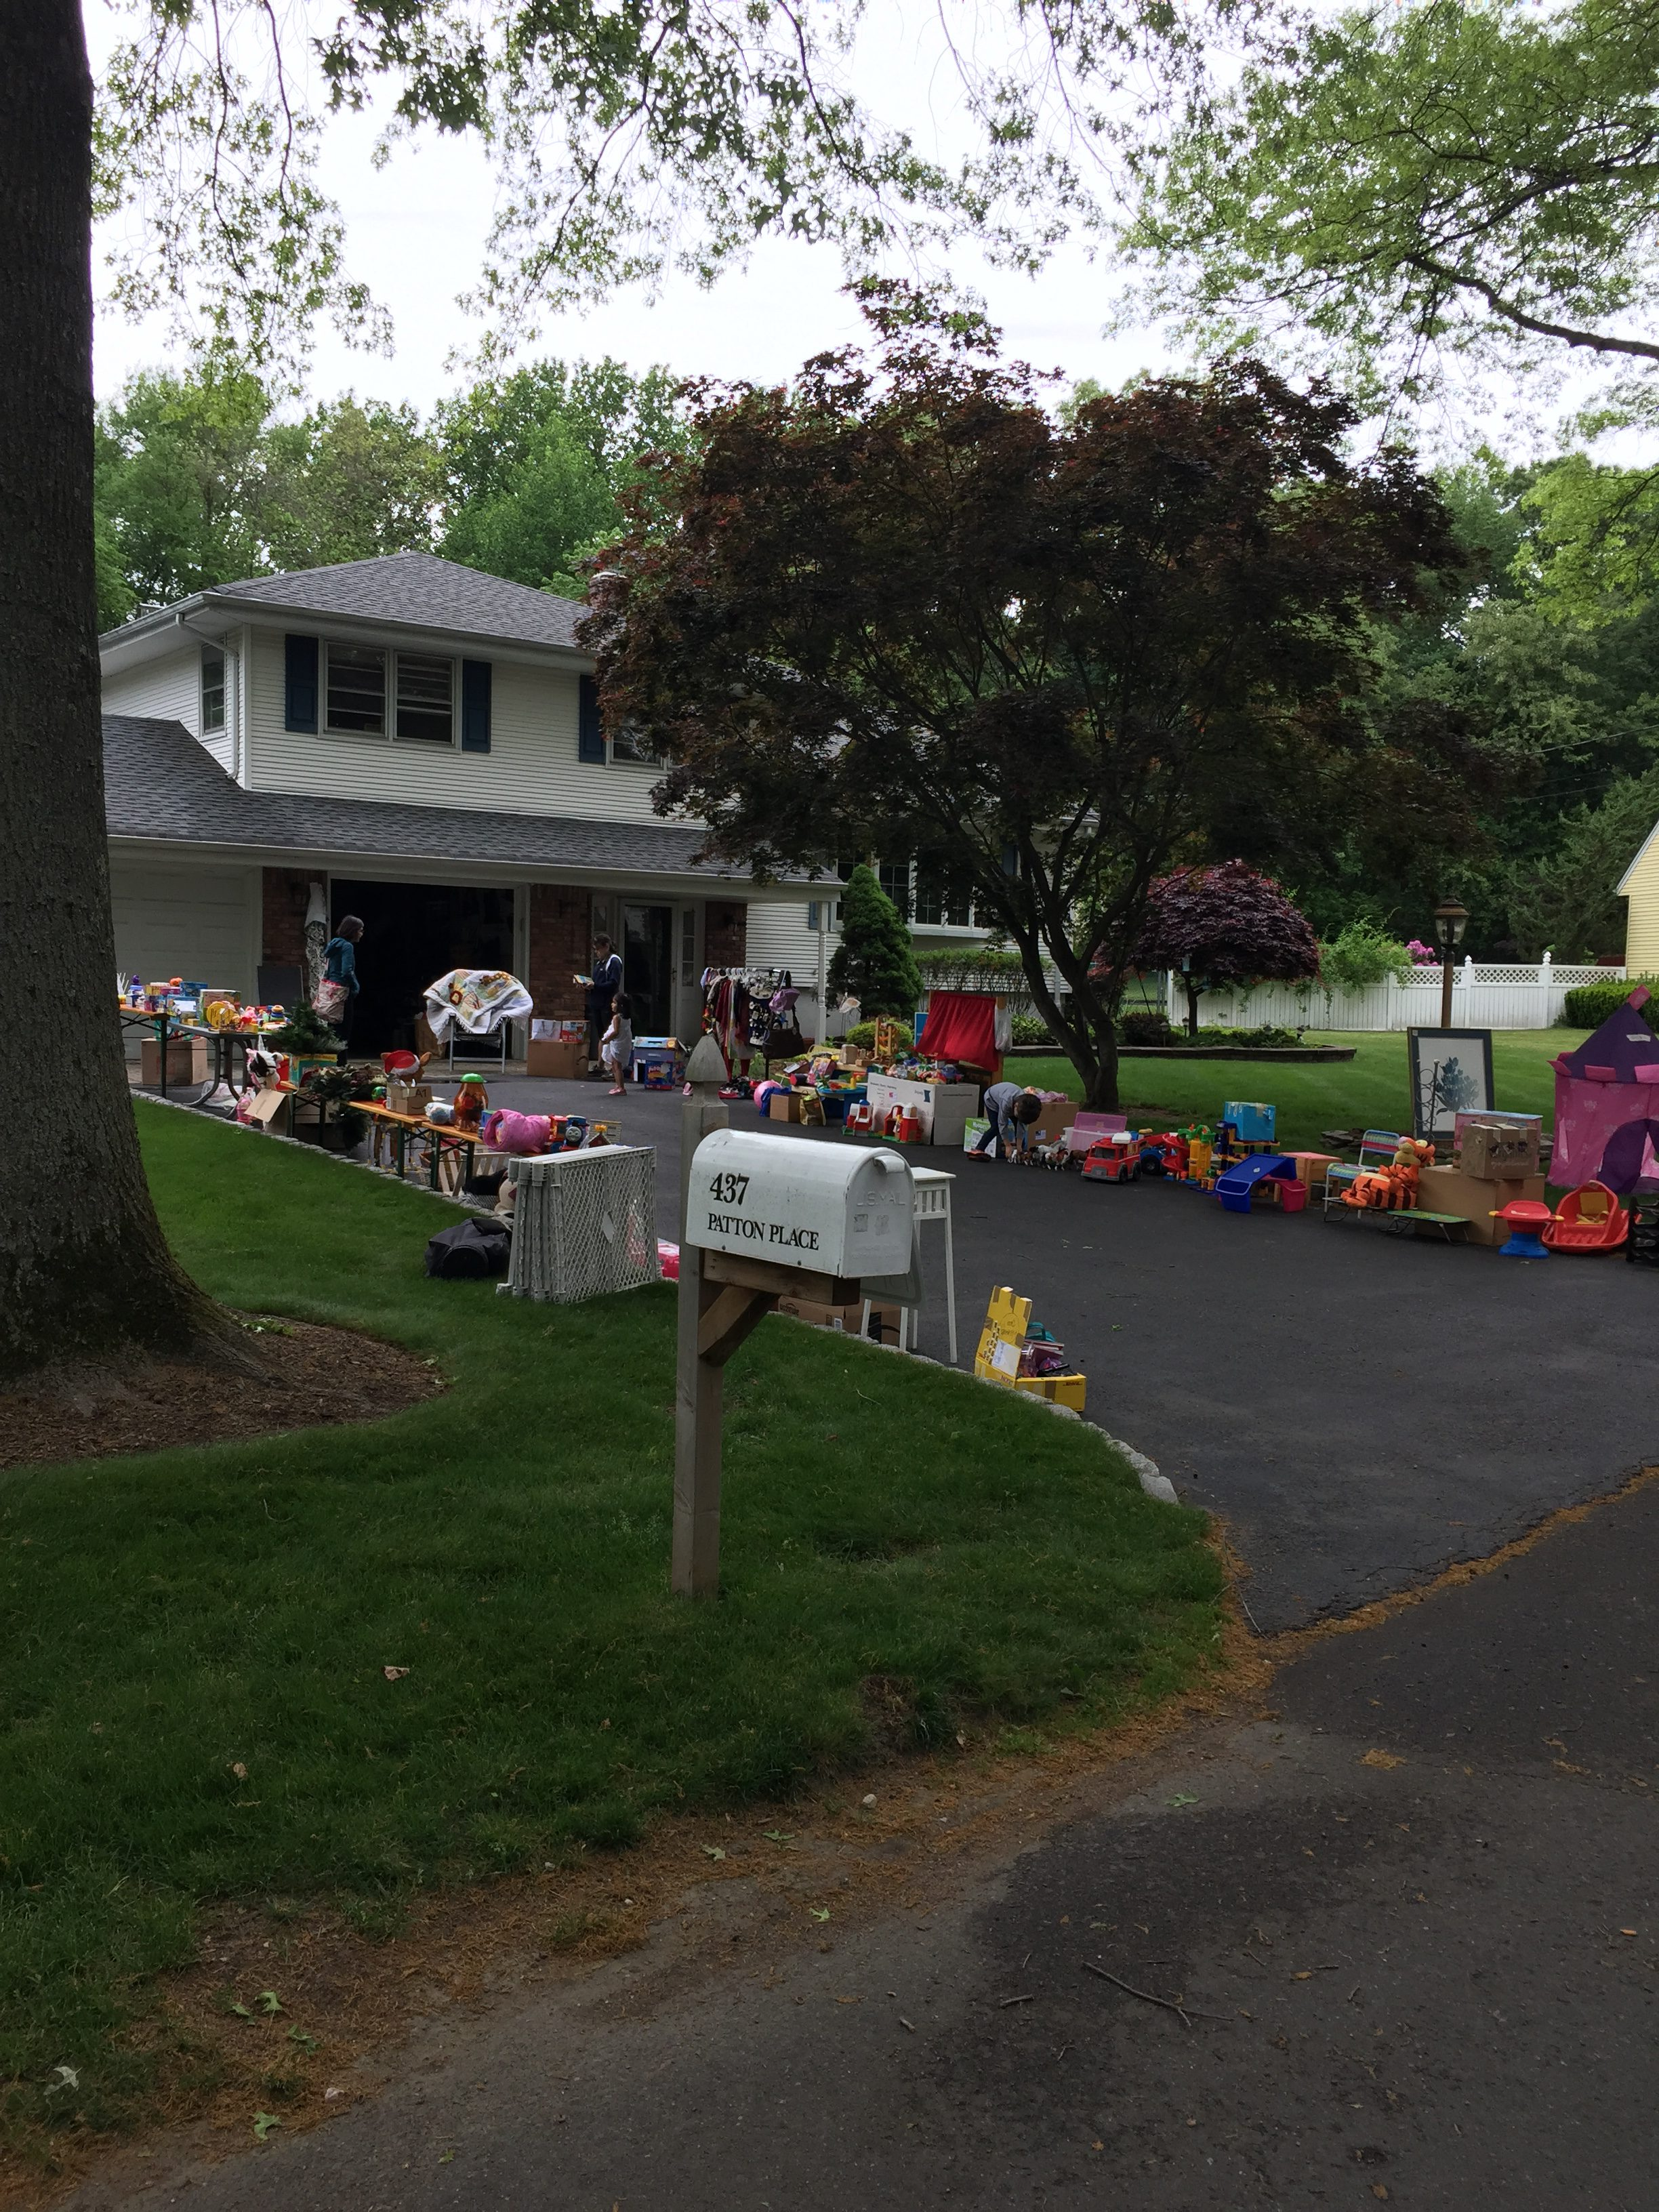 Townwide Garage Sale 2017 Pictures Wyckoff Ptowyckoff Pto